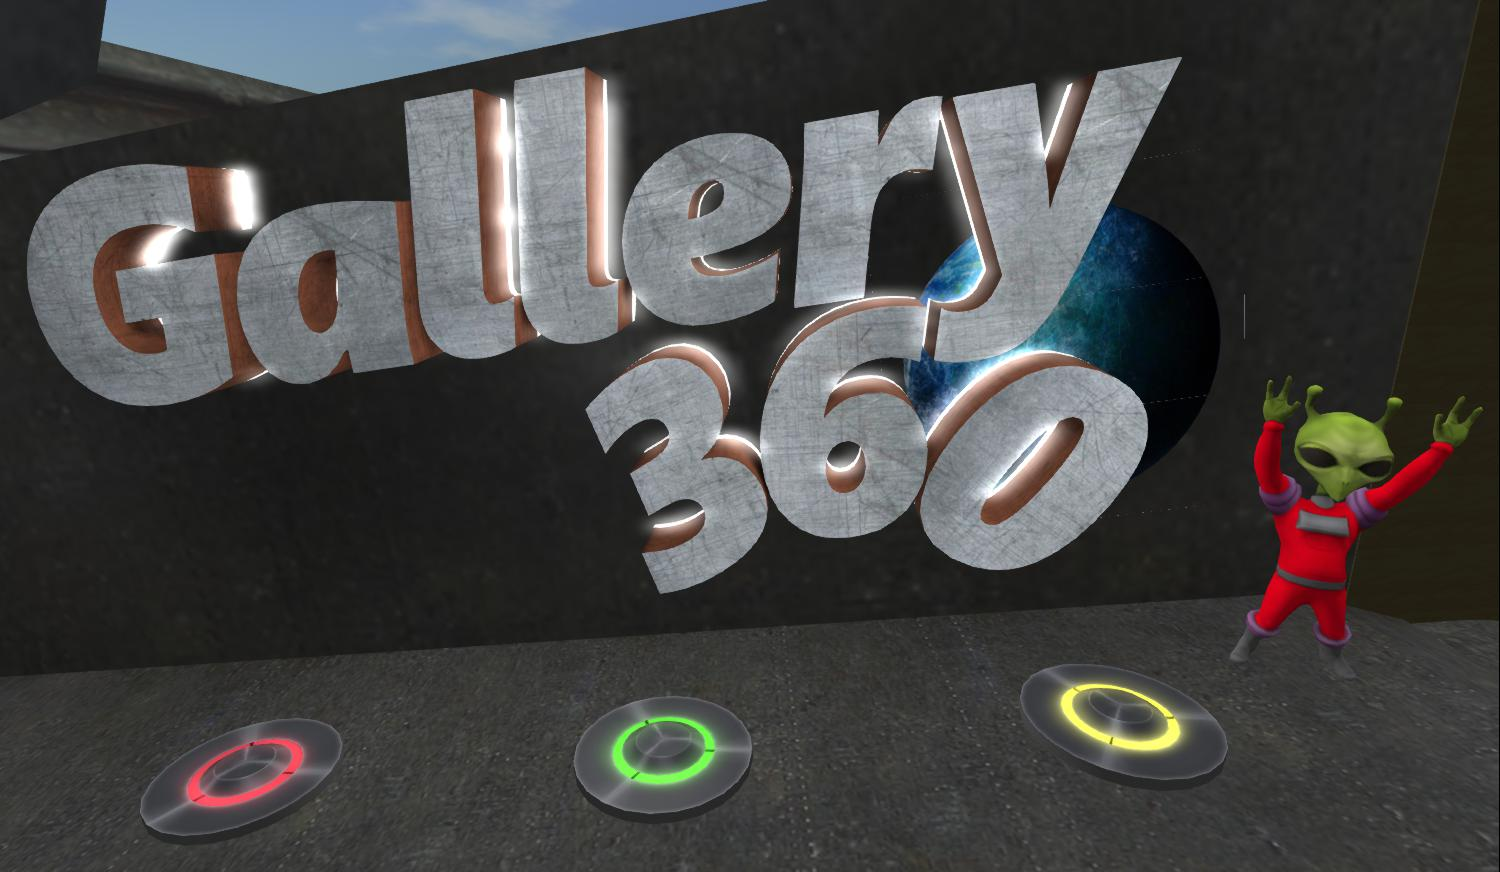 Gallery 360 Art Walk